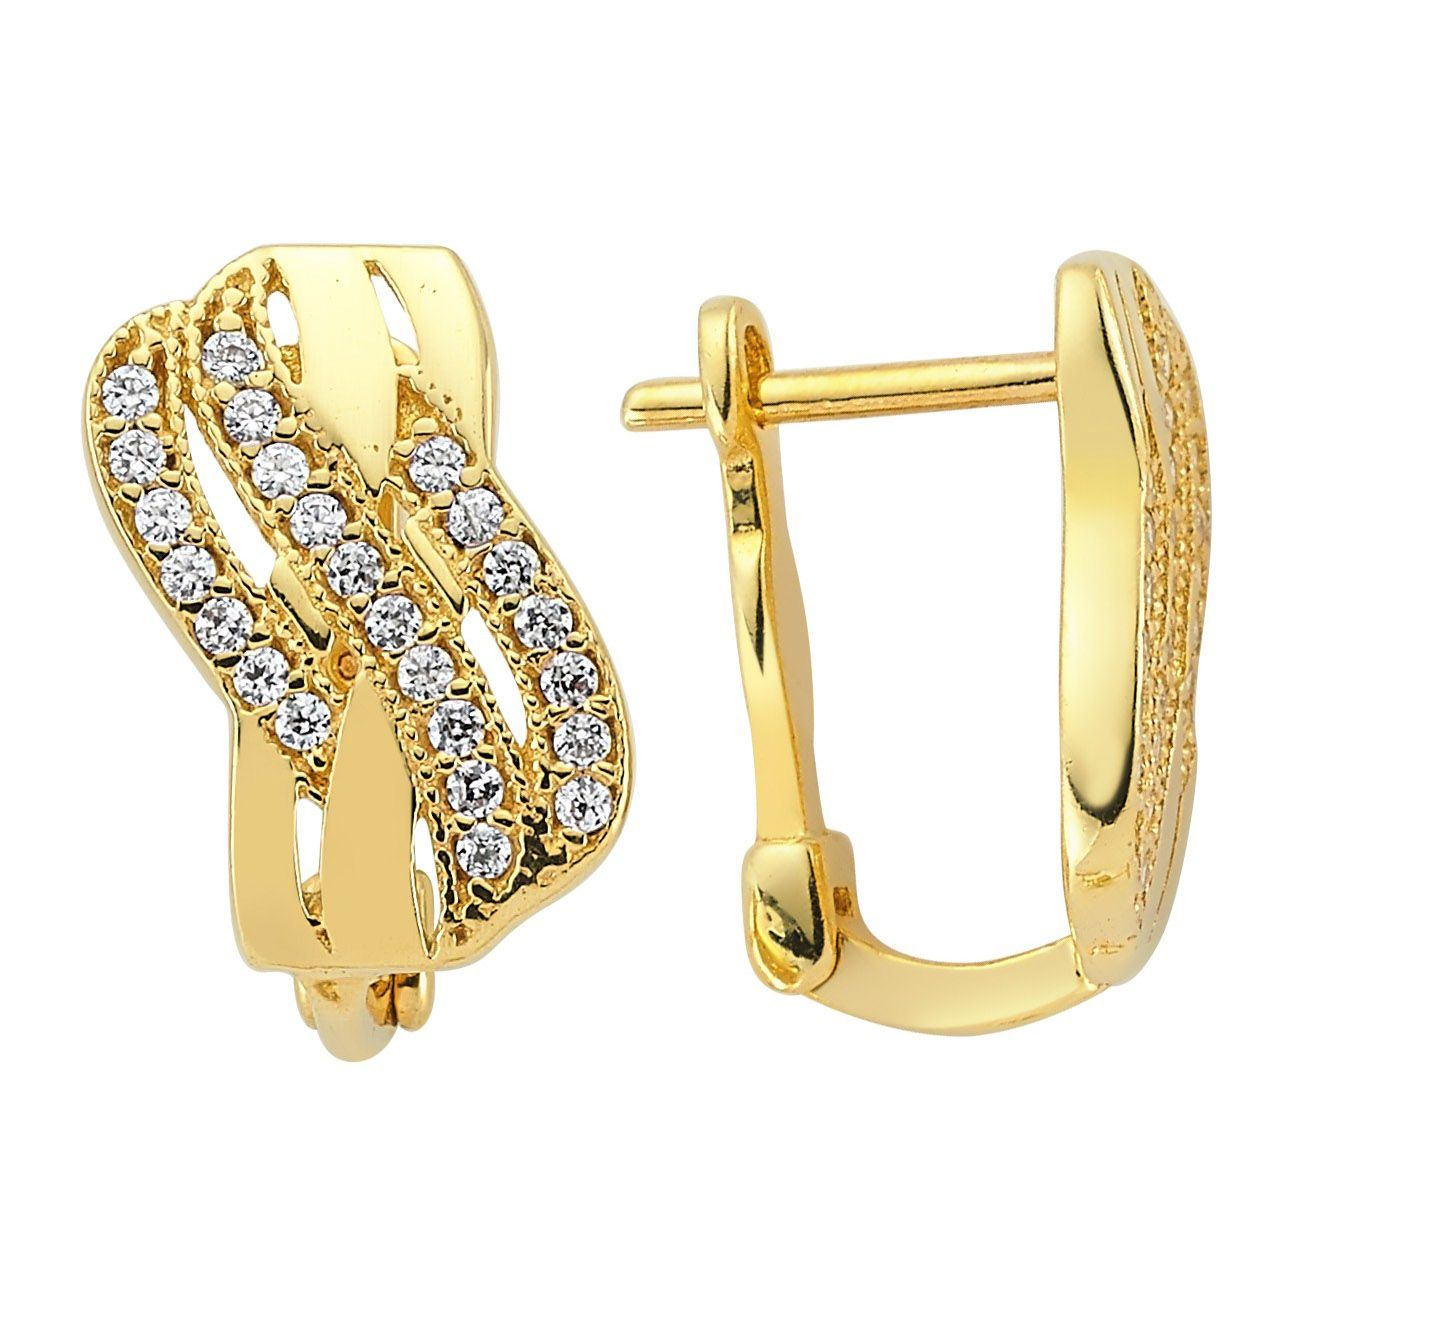 15 Fashion Gold Earring Designs | Gold earrings designs, Gold and ...